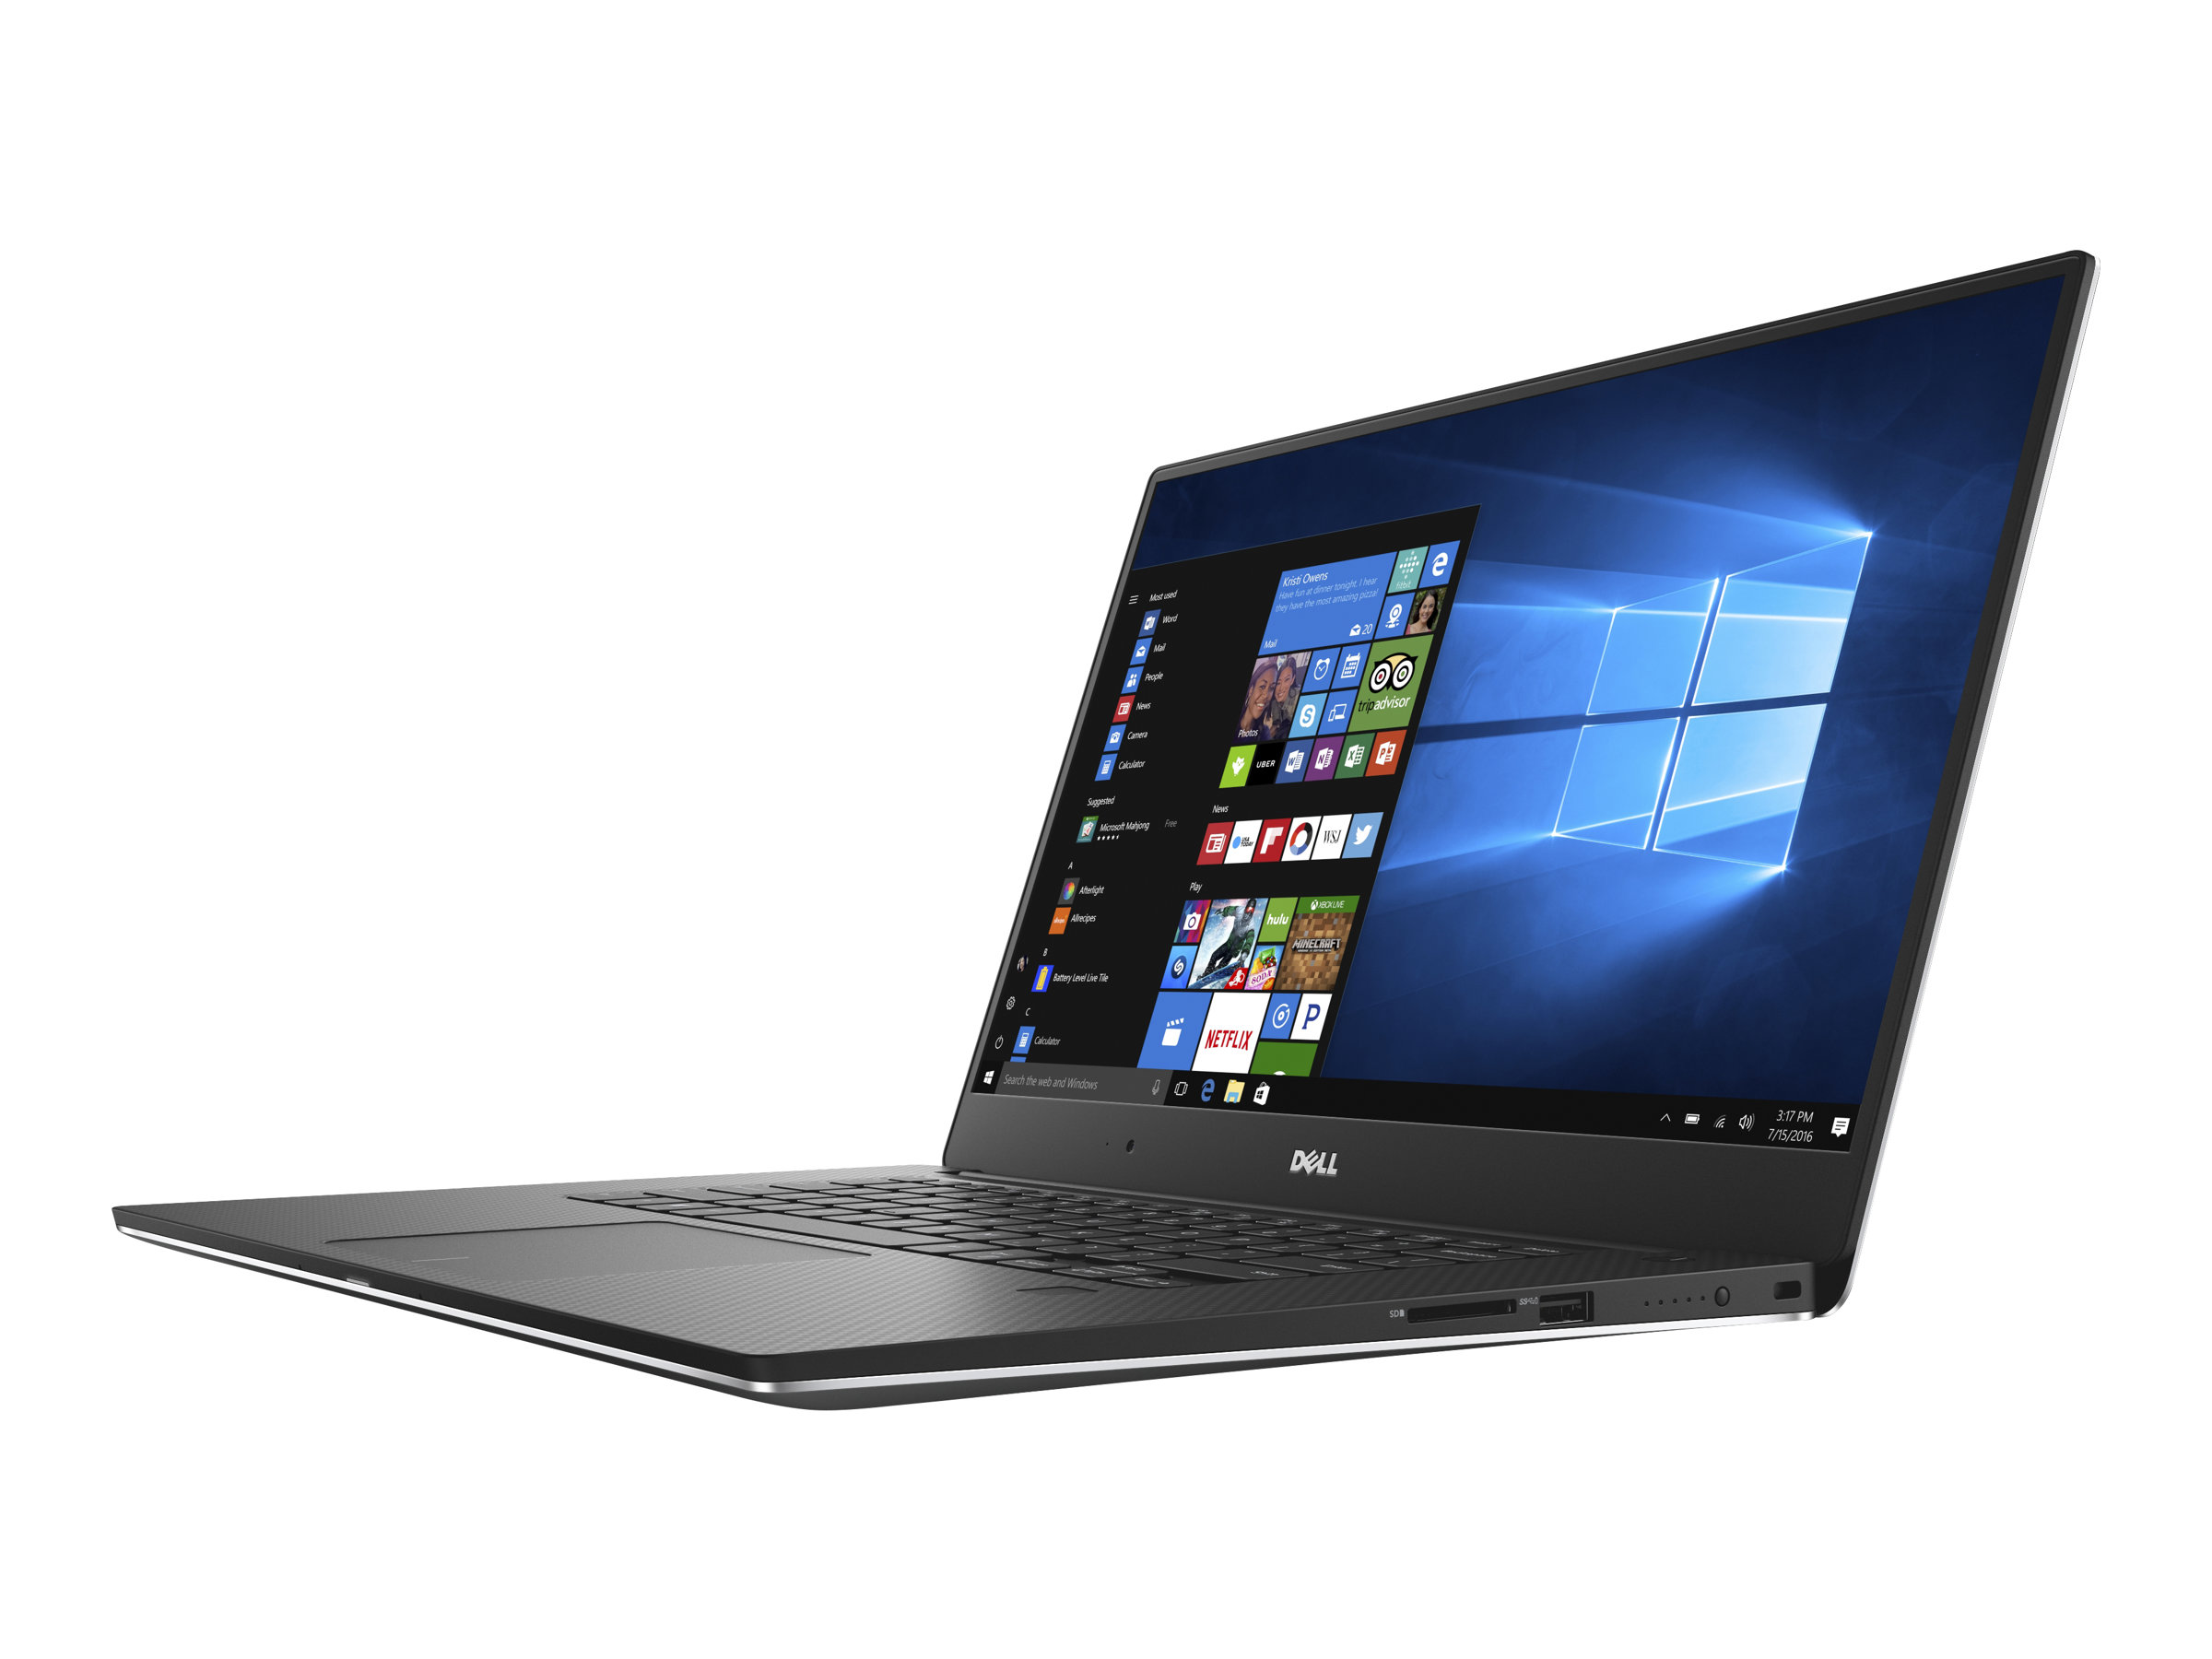 Dell XPS 15 9560 - Core i7 7700HQ / 2.8 GHz - Win 10 Pro 64-Bit - 16 GB RAM - 512 GB SSD - 39.652 cm (15.6